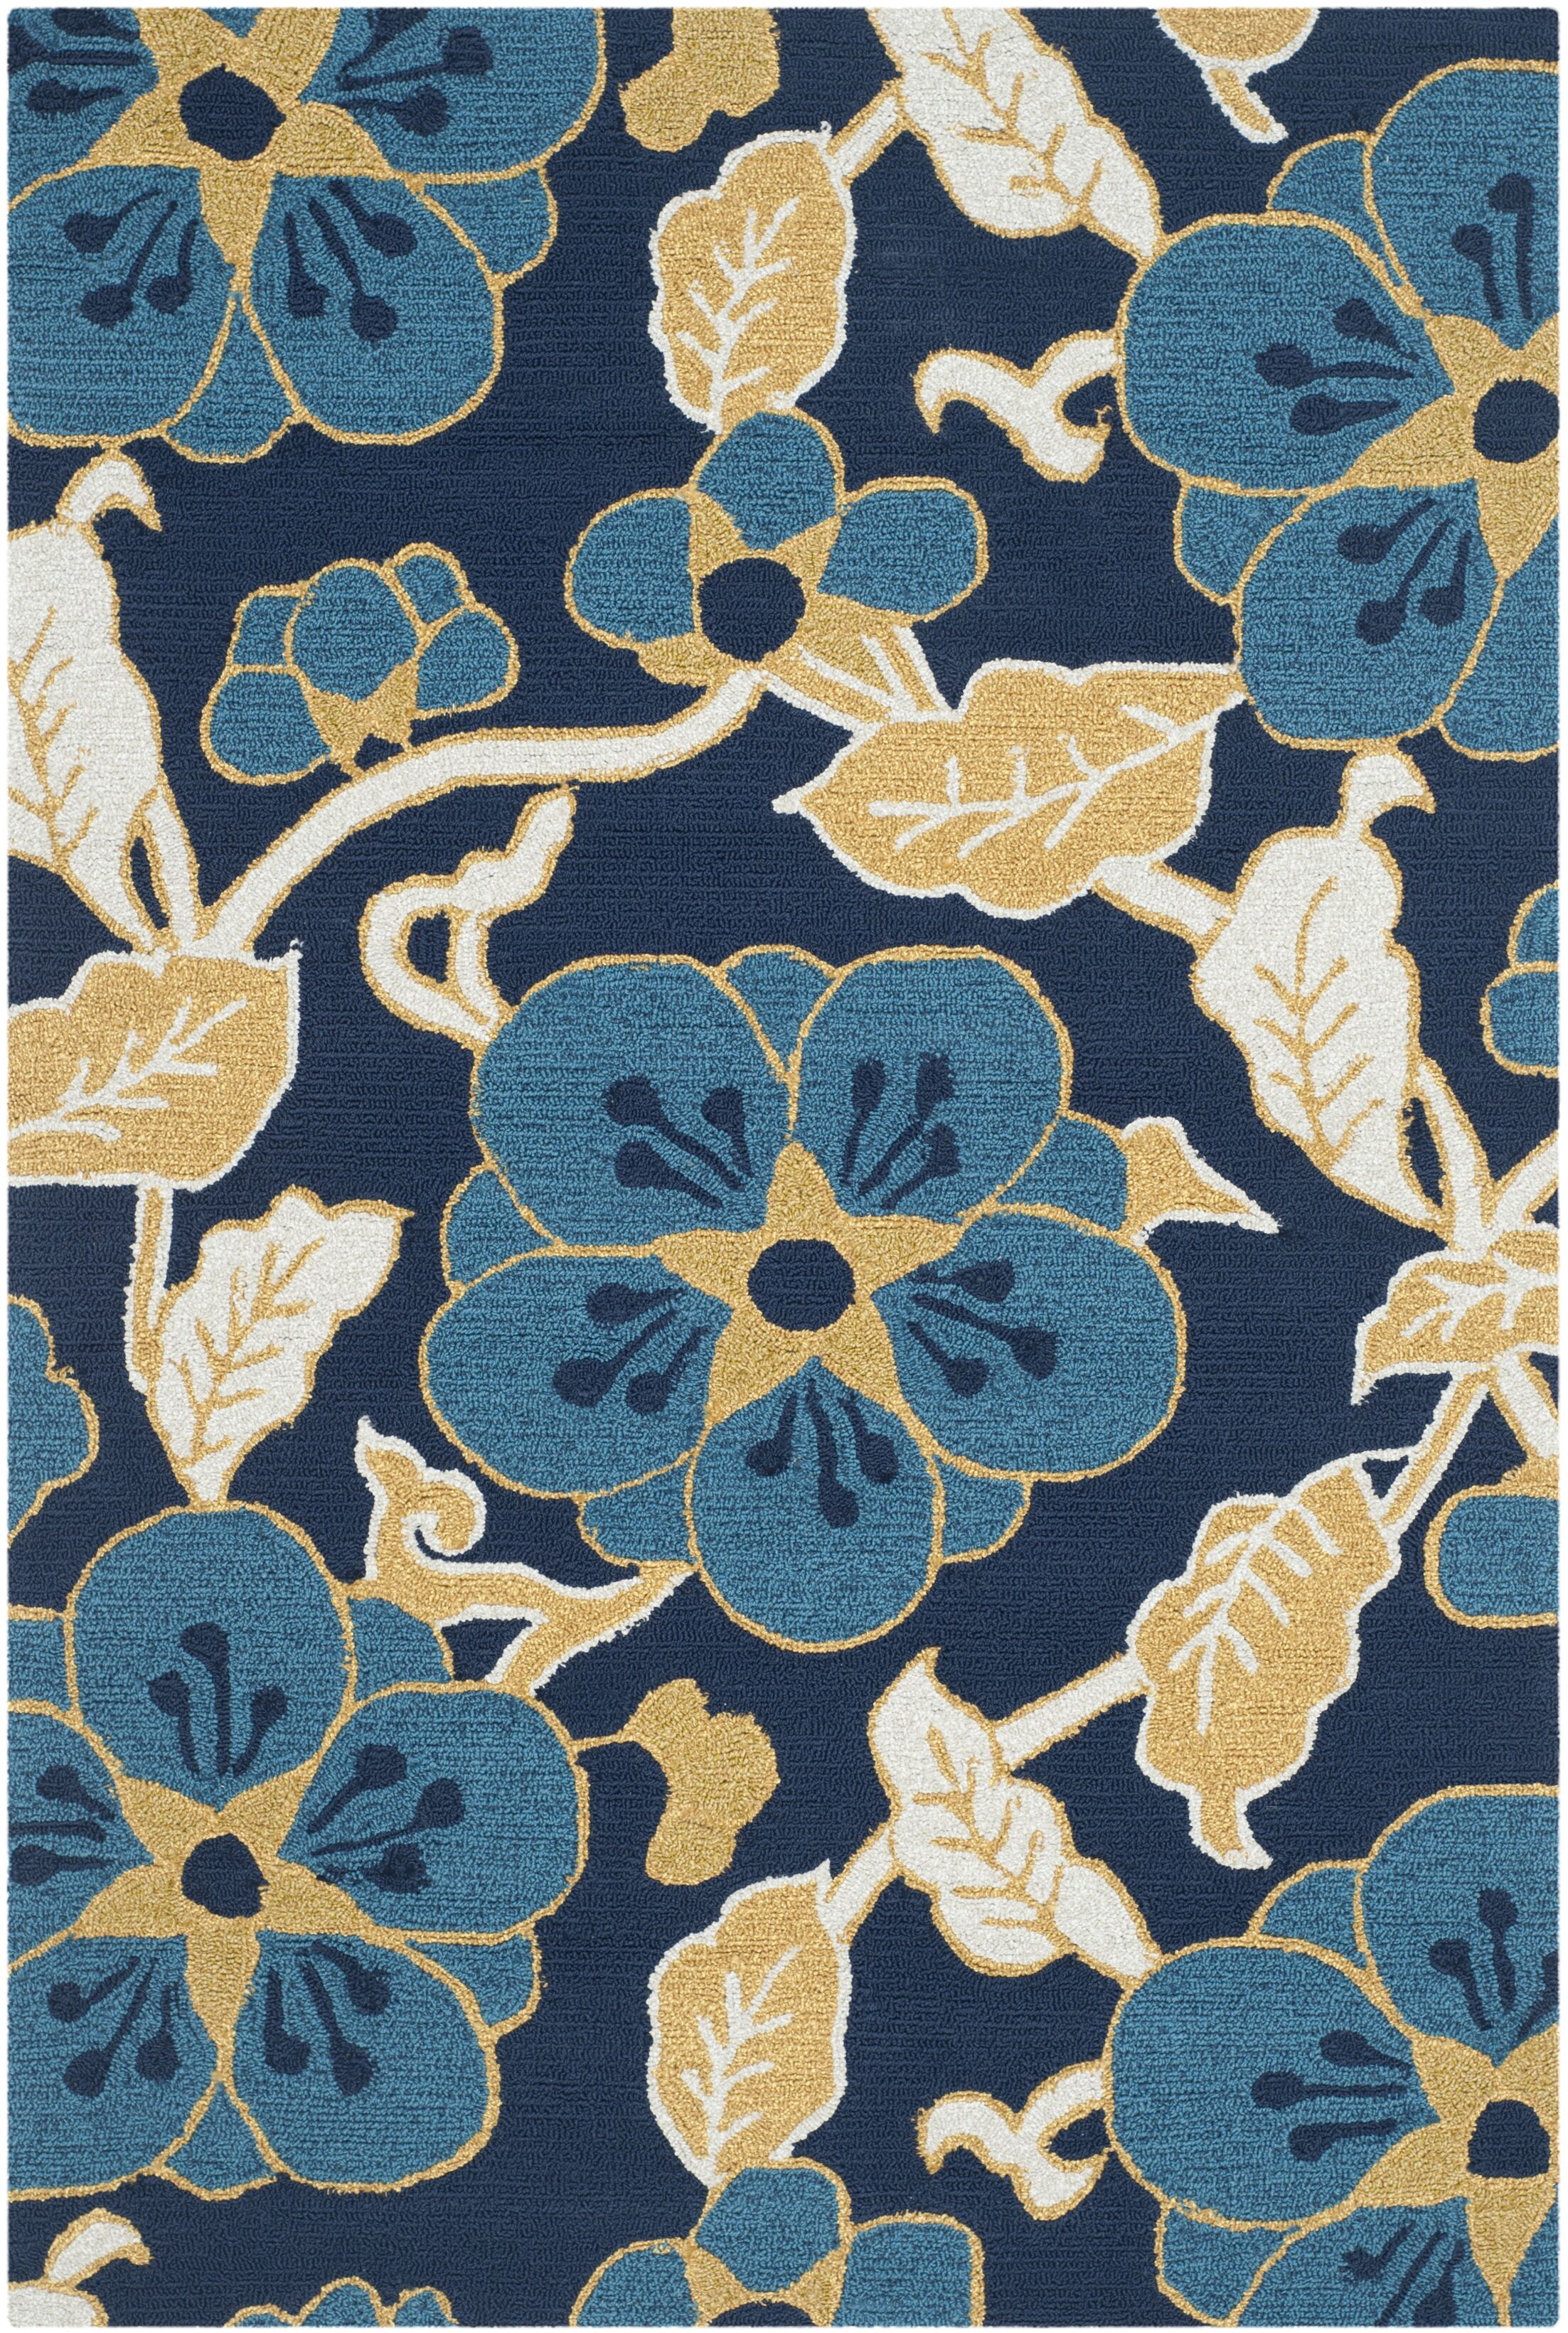 Doyle Navy/Yellow Floral and Plant Area Rug Rug Size: Rectangle 3'6